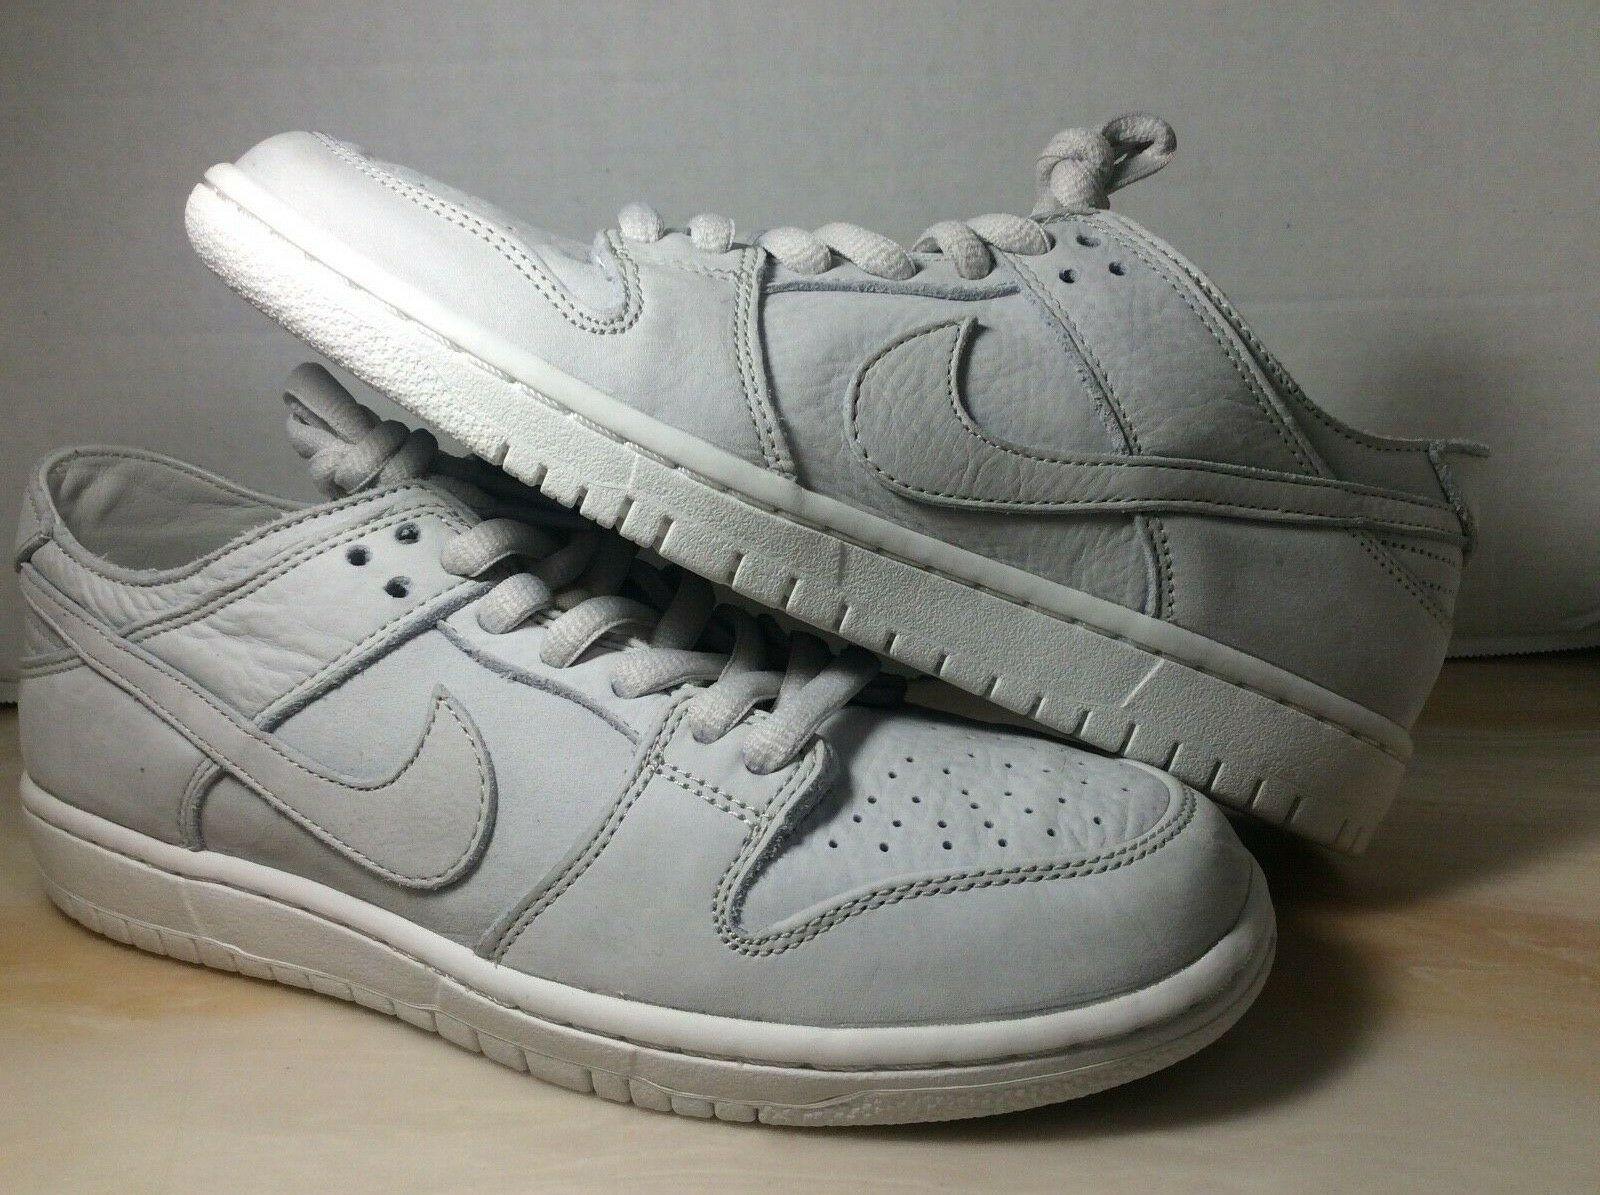 Nike SB Zoom Dunk Low Pro Decon size 8 light bone AA4275 001